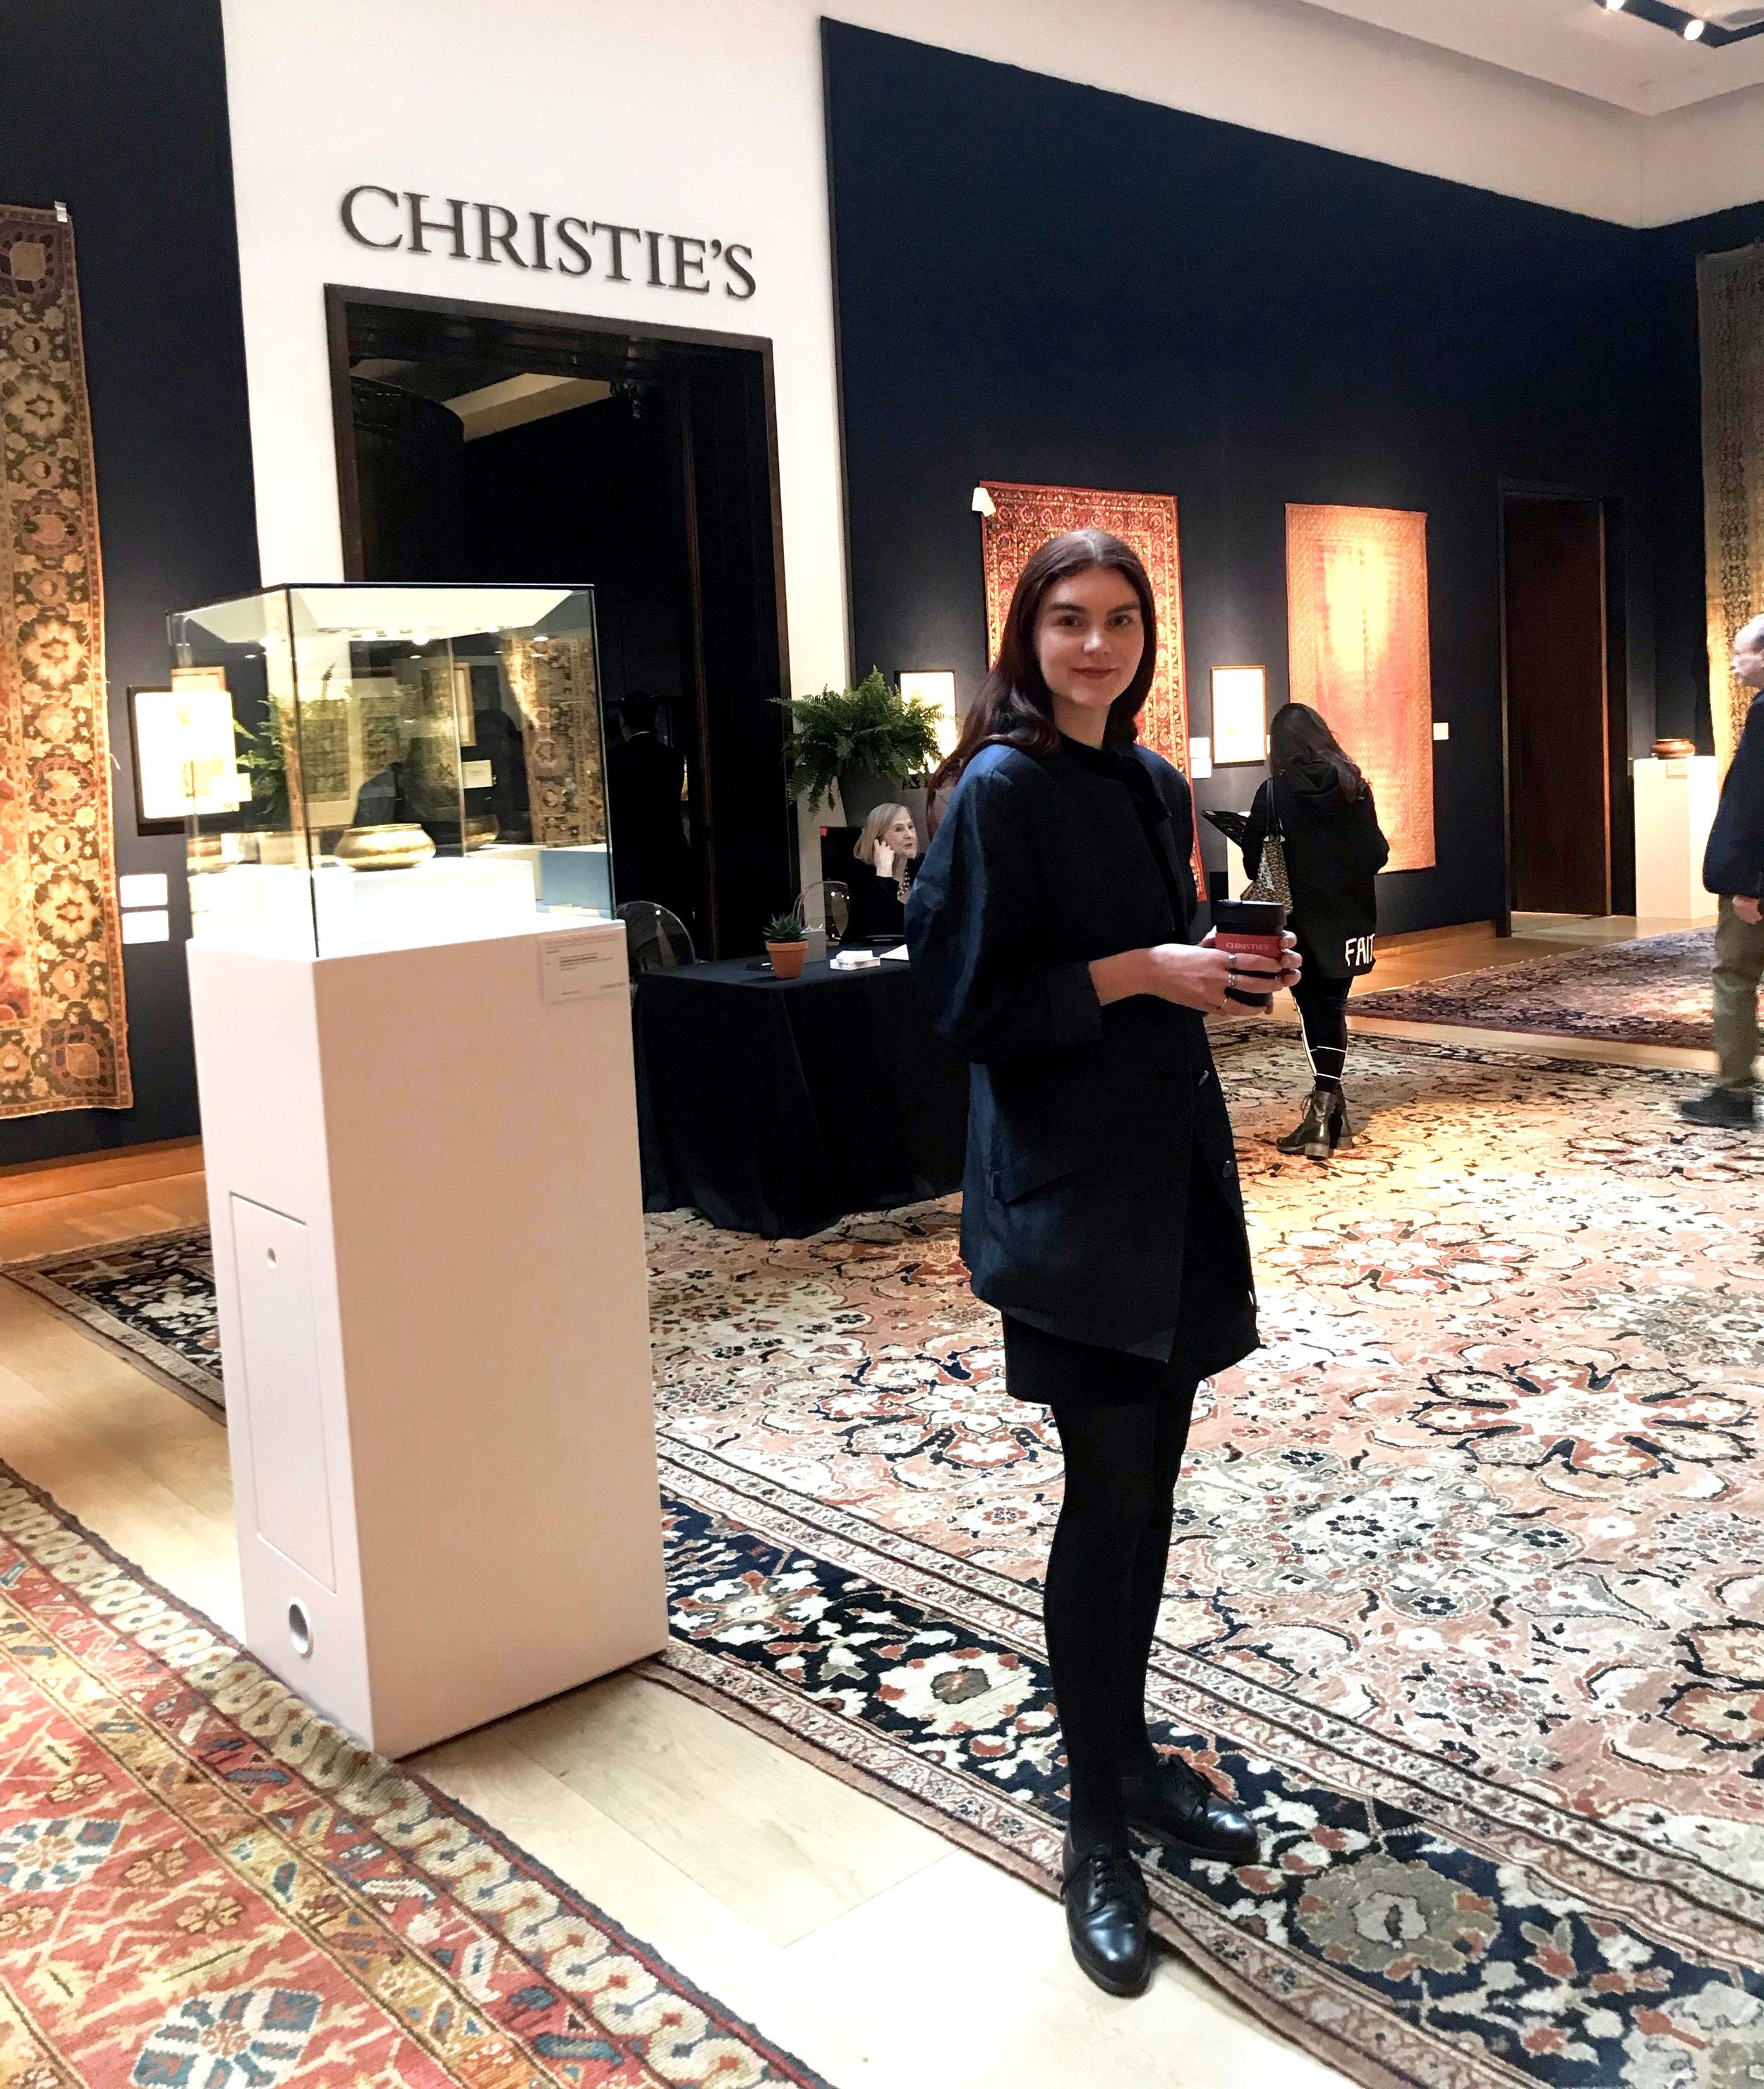 Hos Christie's. Foto: Privat